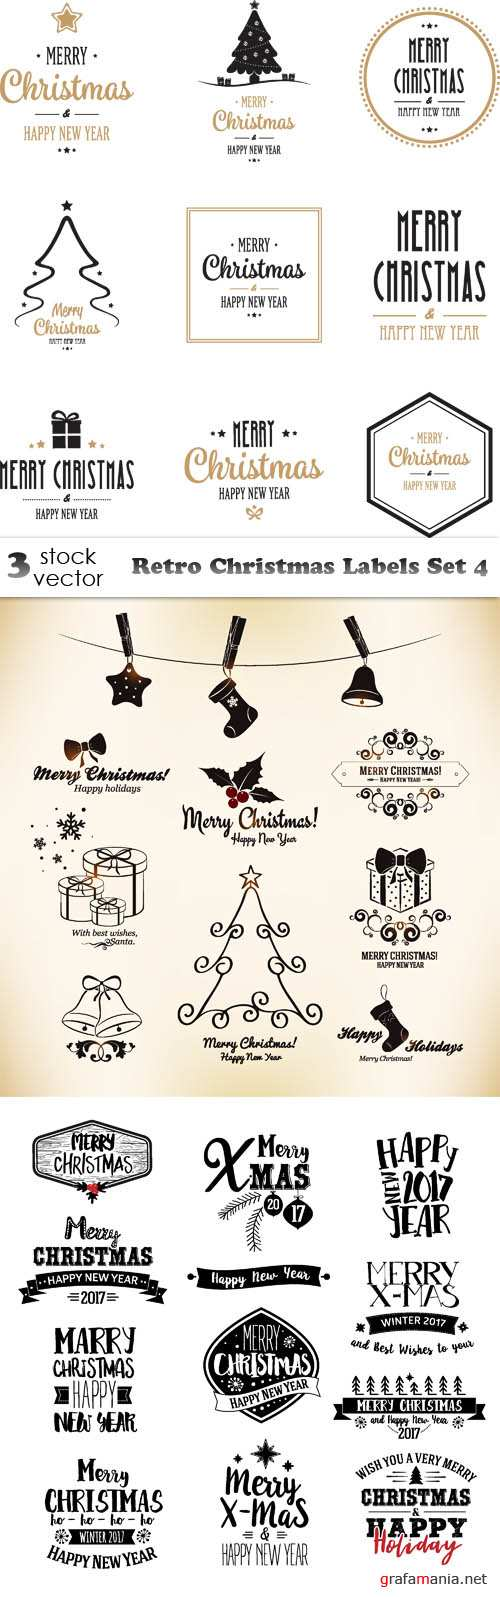 Vectors - Retro Christmas Labels Set 4